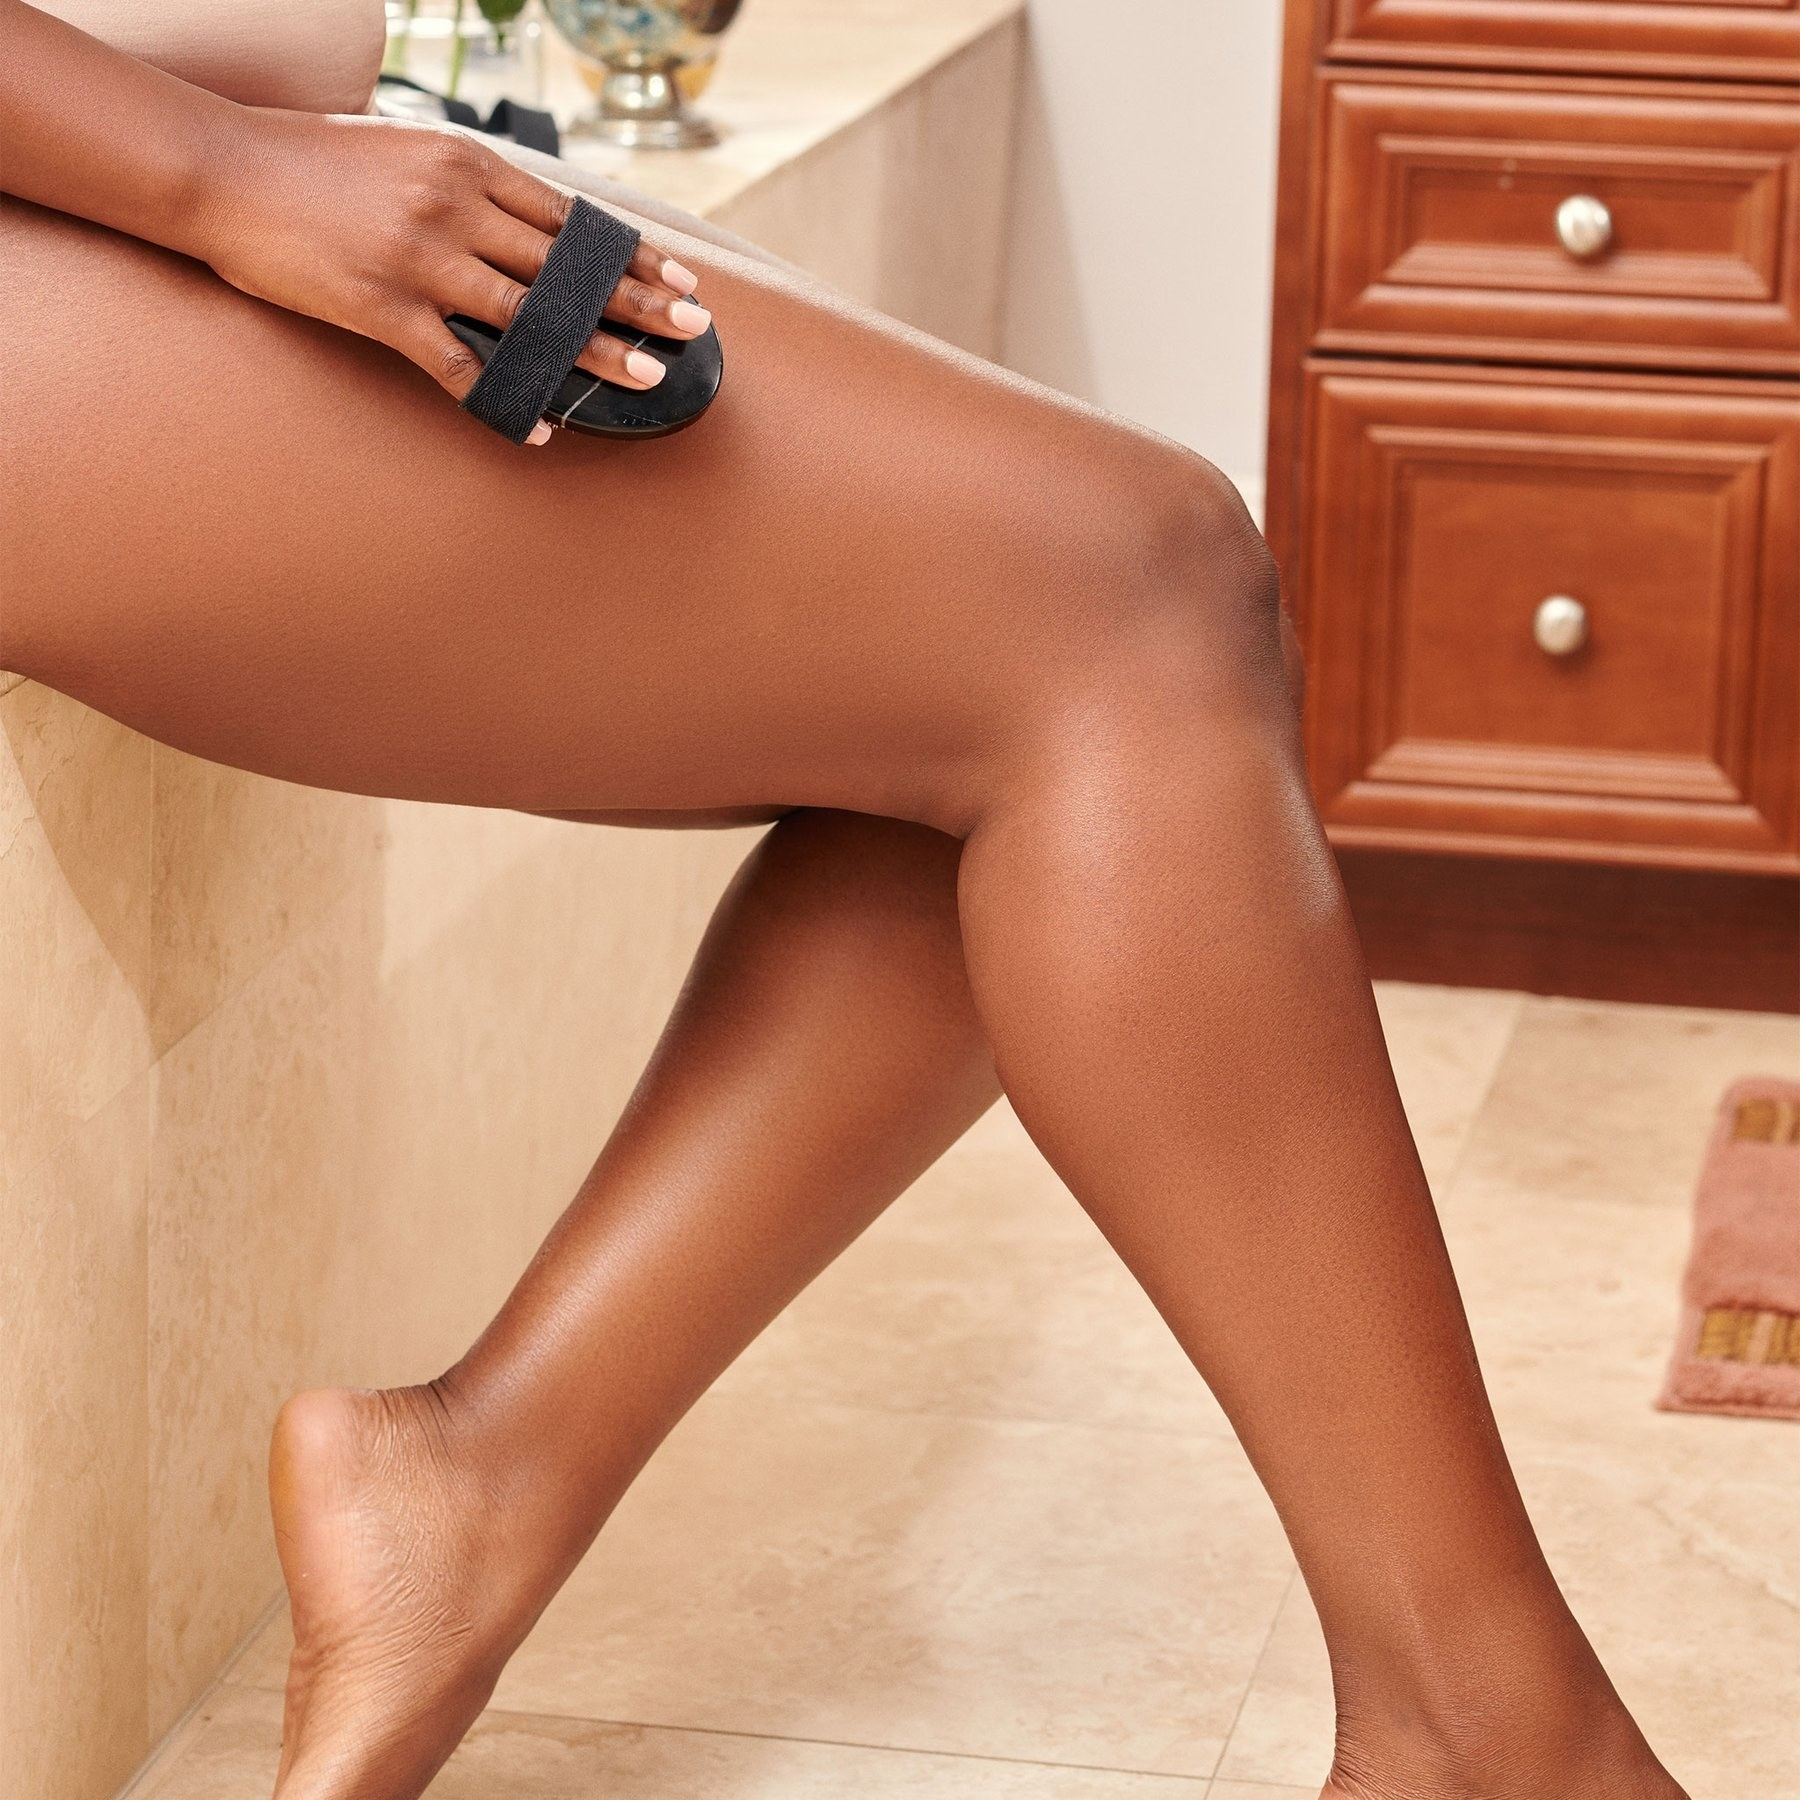 Model uses Gilded Body Marble Body Brush to exfoliate legs